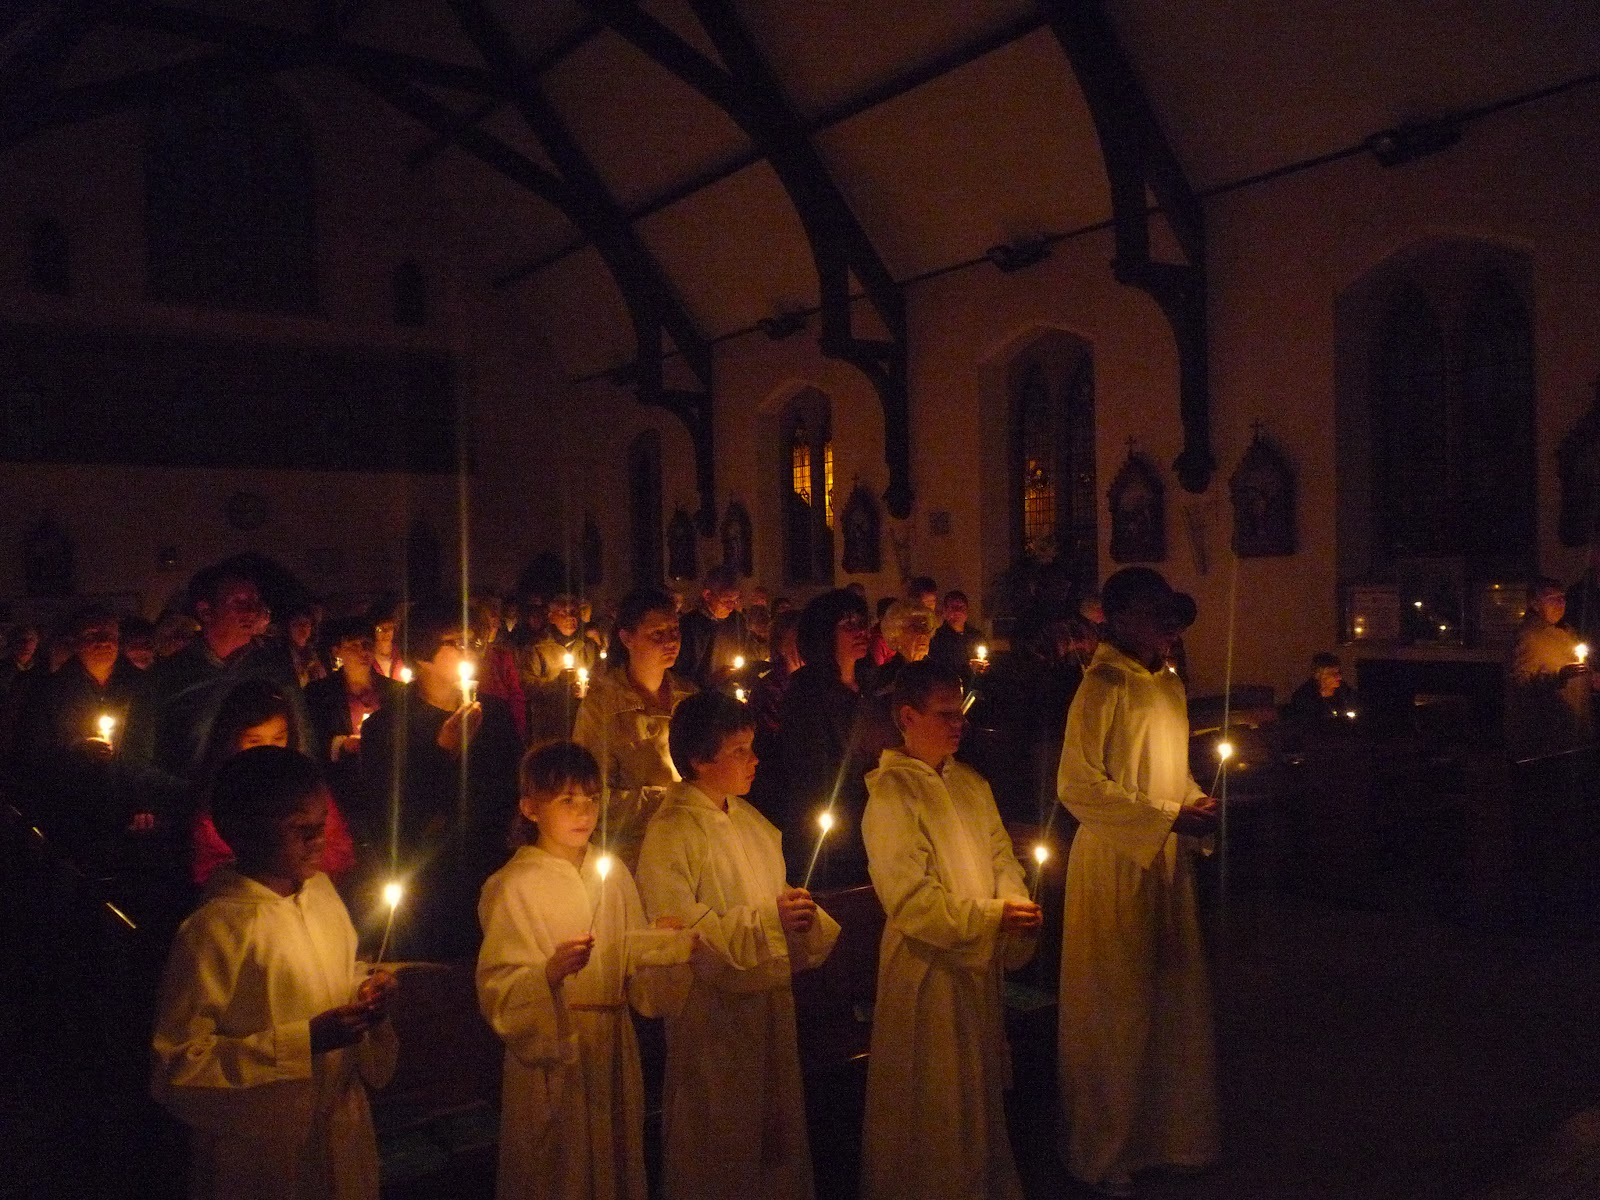 a personal narrative on experiencing the easter vigil in guelph ontario Health officials say at least one, and possibly two children have died from the flu in the guelph region public health wellington-dufferin-guelph confirms one influenza-related death, and one suspected influenza-related death of elementary school children in.